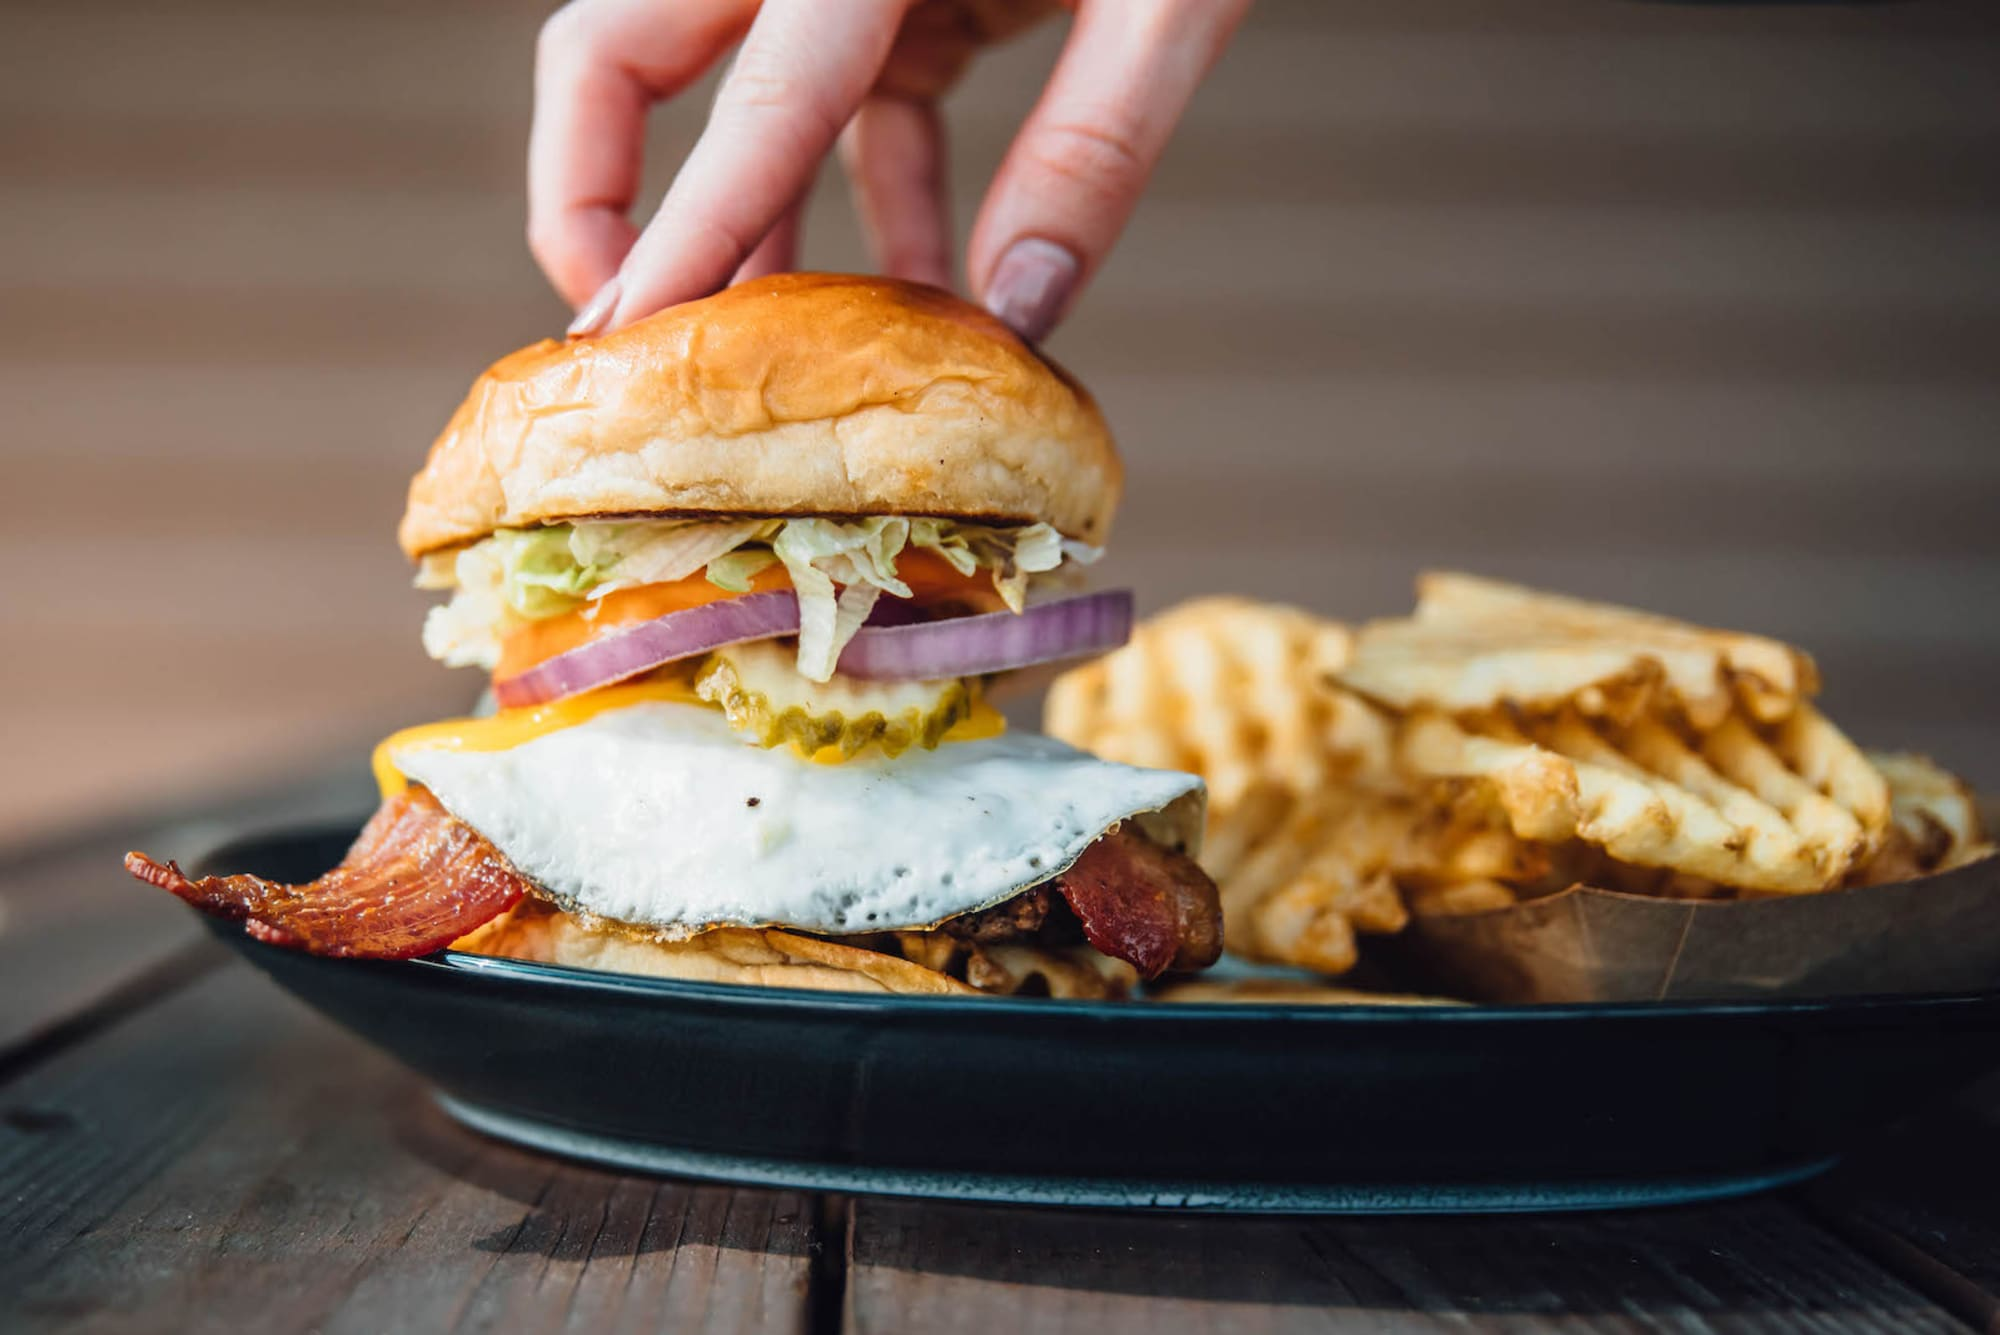 Walk-On's Sports Bistreaux: Find your next brunch spot with a touch of southern comfort